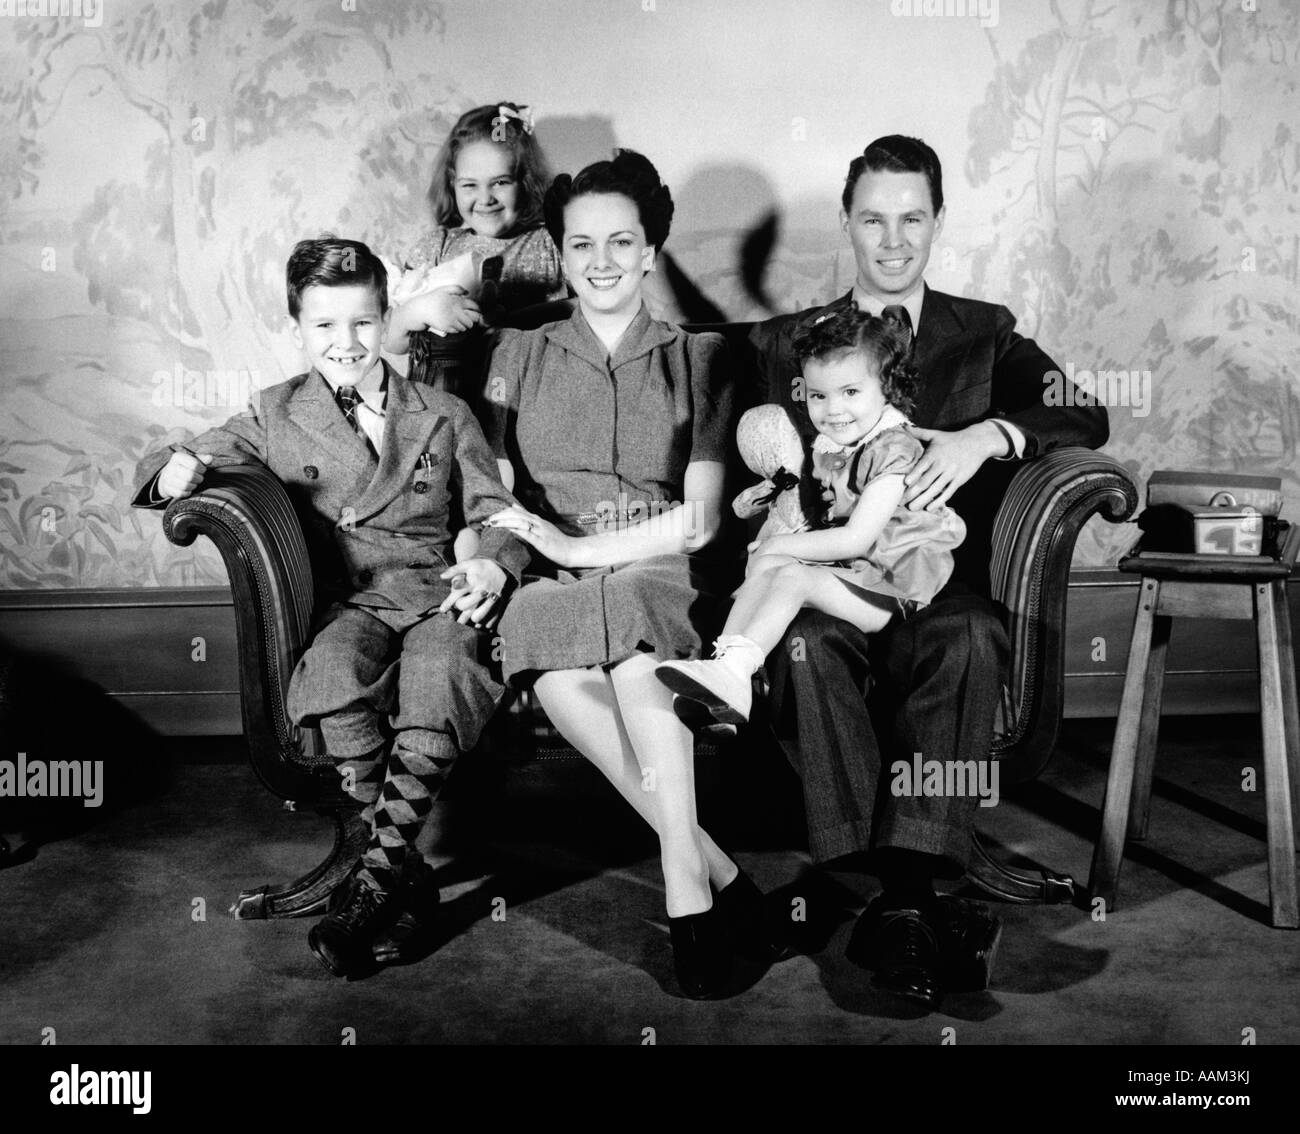 1940s FAMILY OF 5 PORTRAIT SITTING ON COUCH FACING CAMERA SMILING MOTHER FATHER TWO GIRLS ONE BOY WALLPAPER PRINT - Stock Image